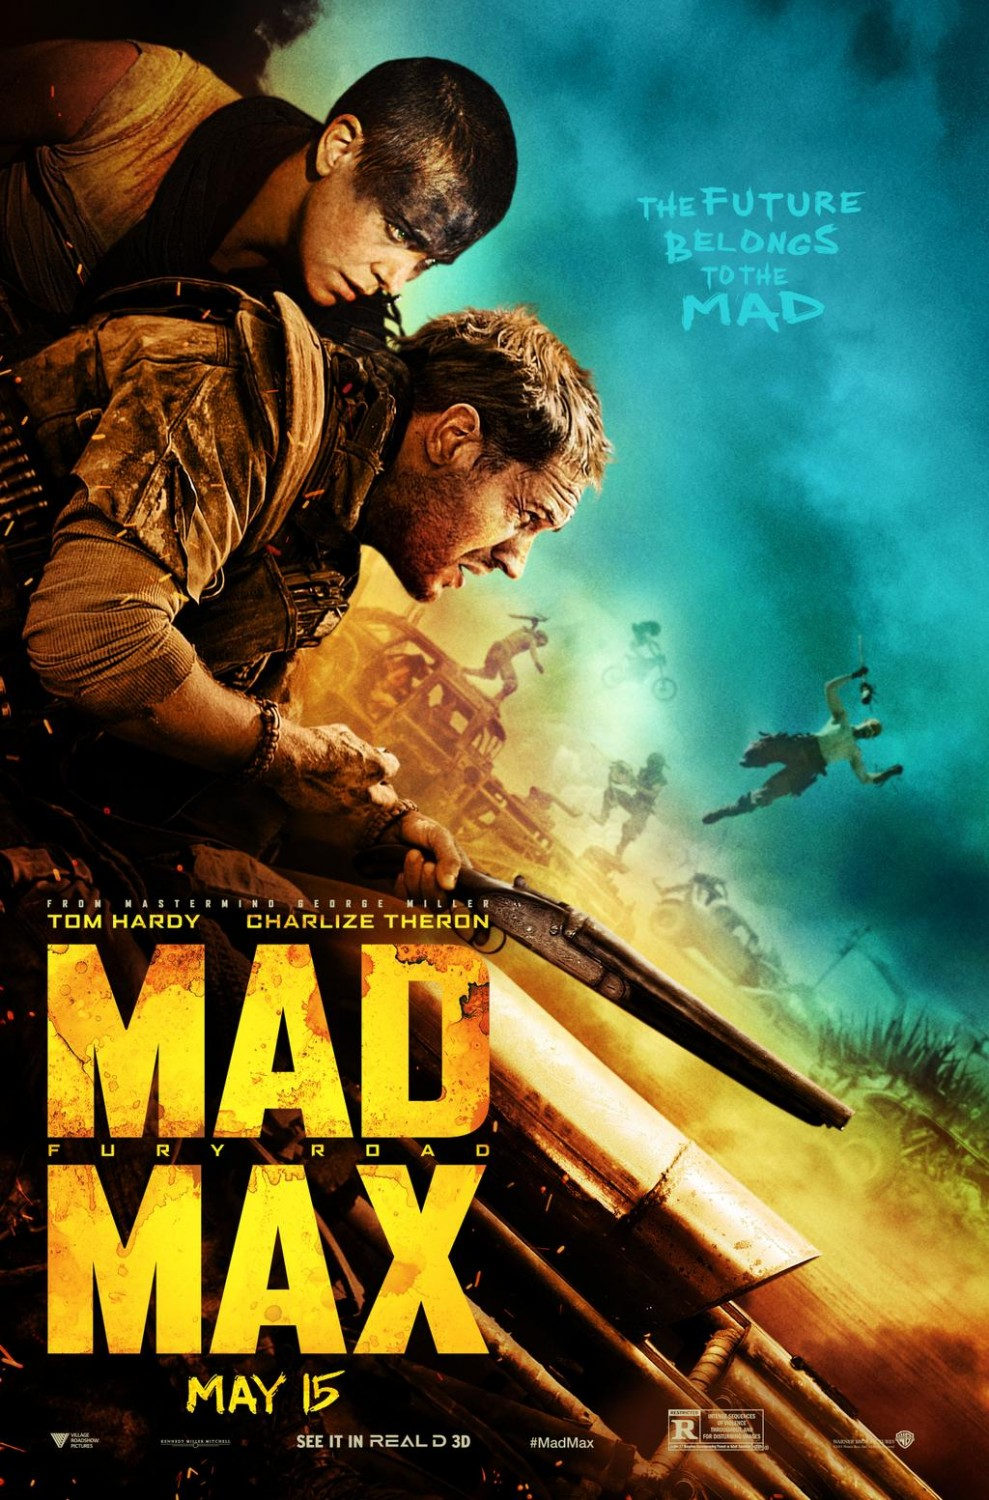 Mad Max: Fury Road images 'Mad Max: Fury Road' Poster HD wallpaper and background photos